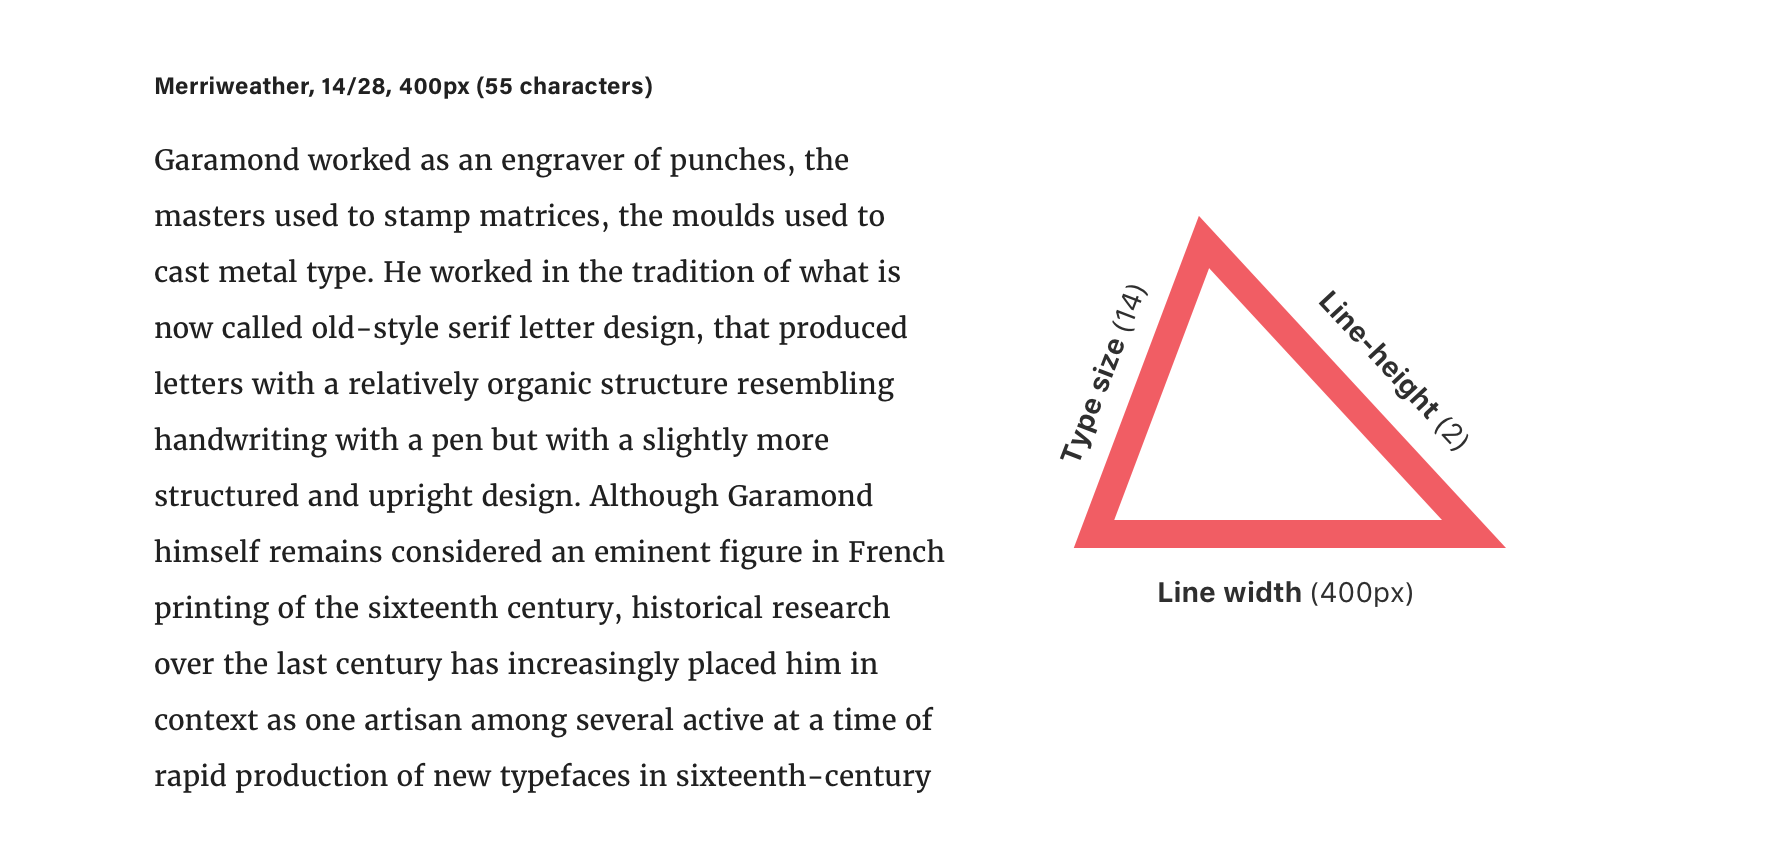 The Equilateral Triangle of a Perfect Paragraph | CSS-Tricks